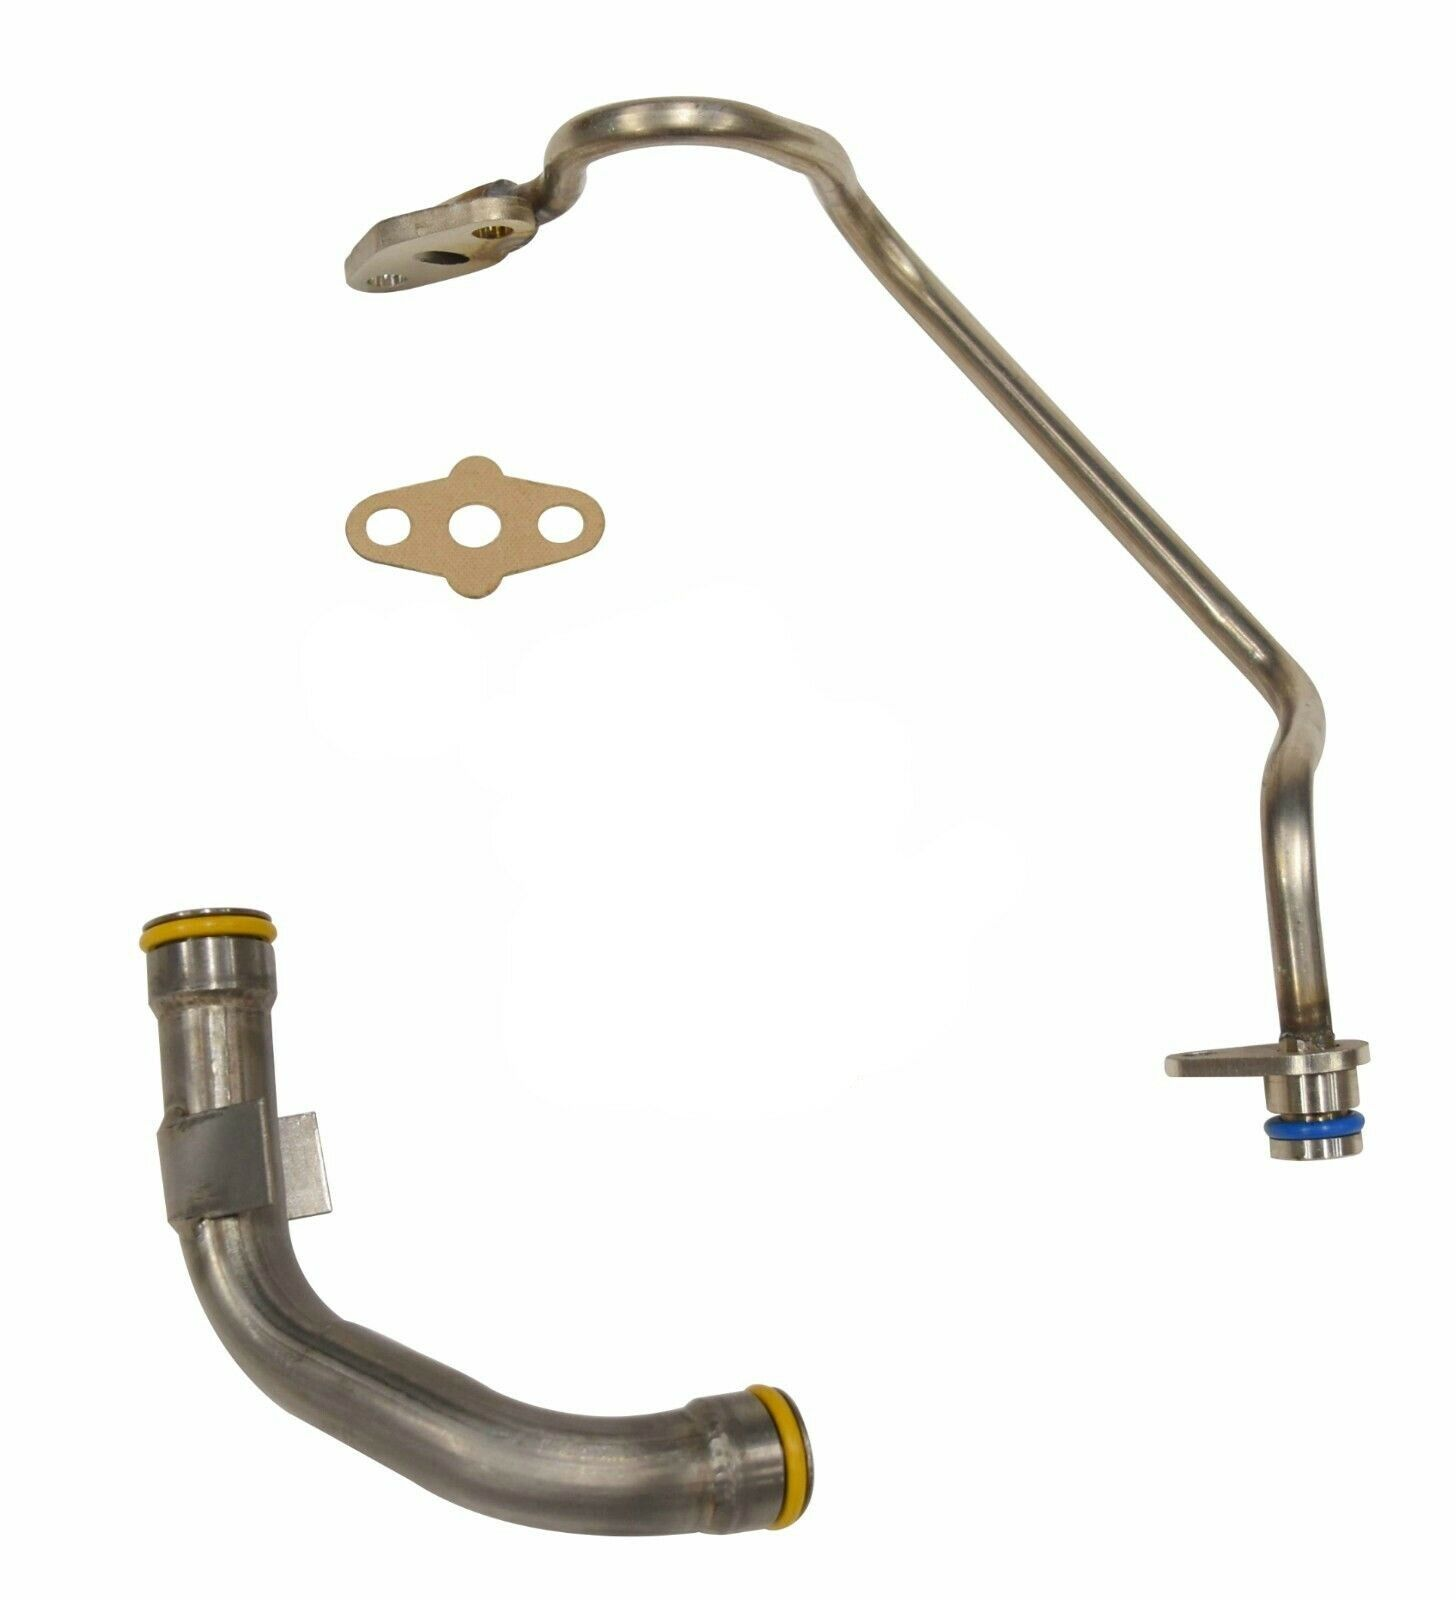 SPOOLOGIC Updated Turbo Oil Feed Drain Line Kit for 03-10 6.0L Powerstroke